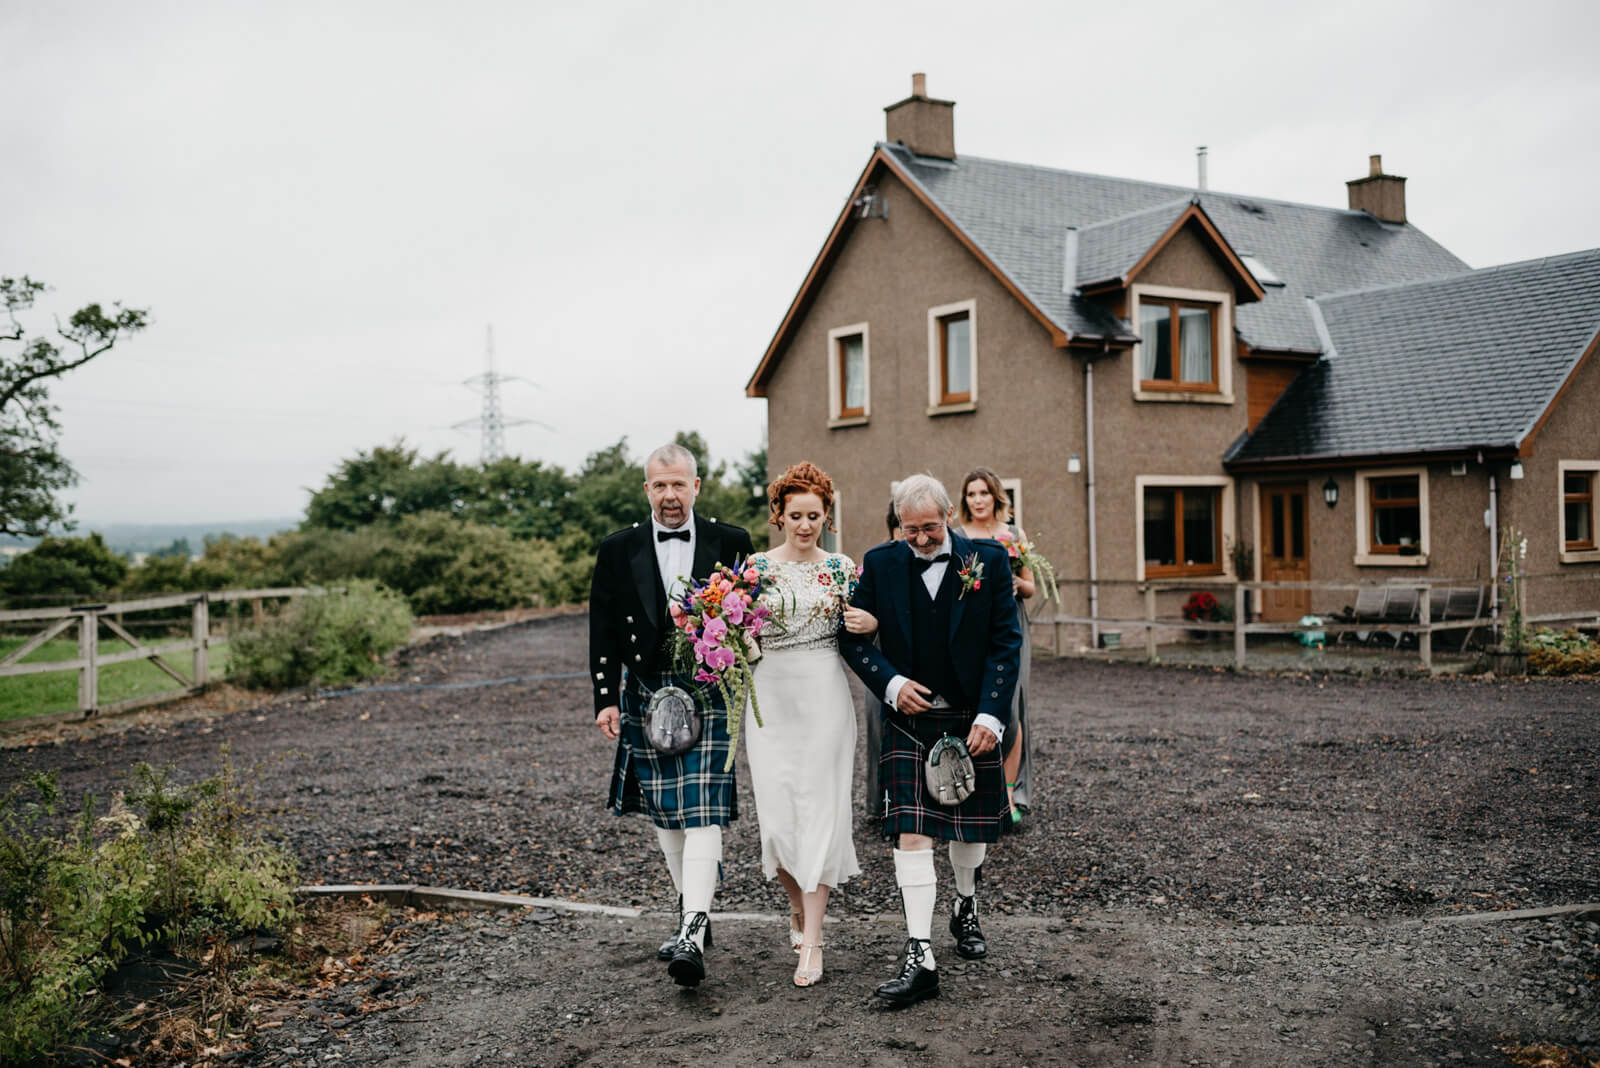 Bride walks with her dads to marry at her Farm Wedding in Dunblane, Stirling